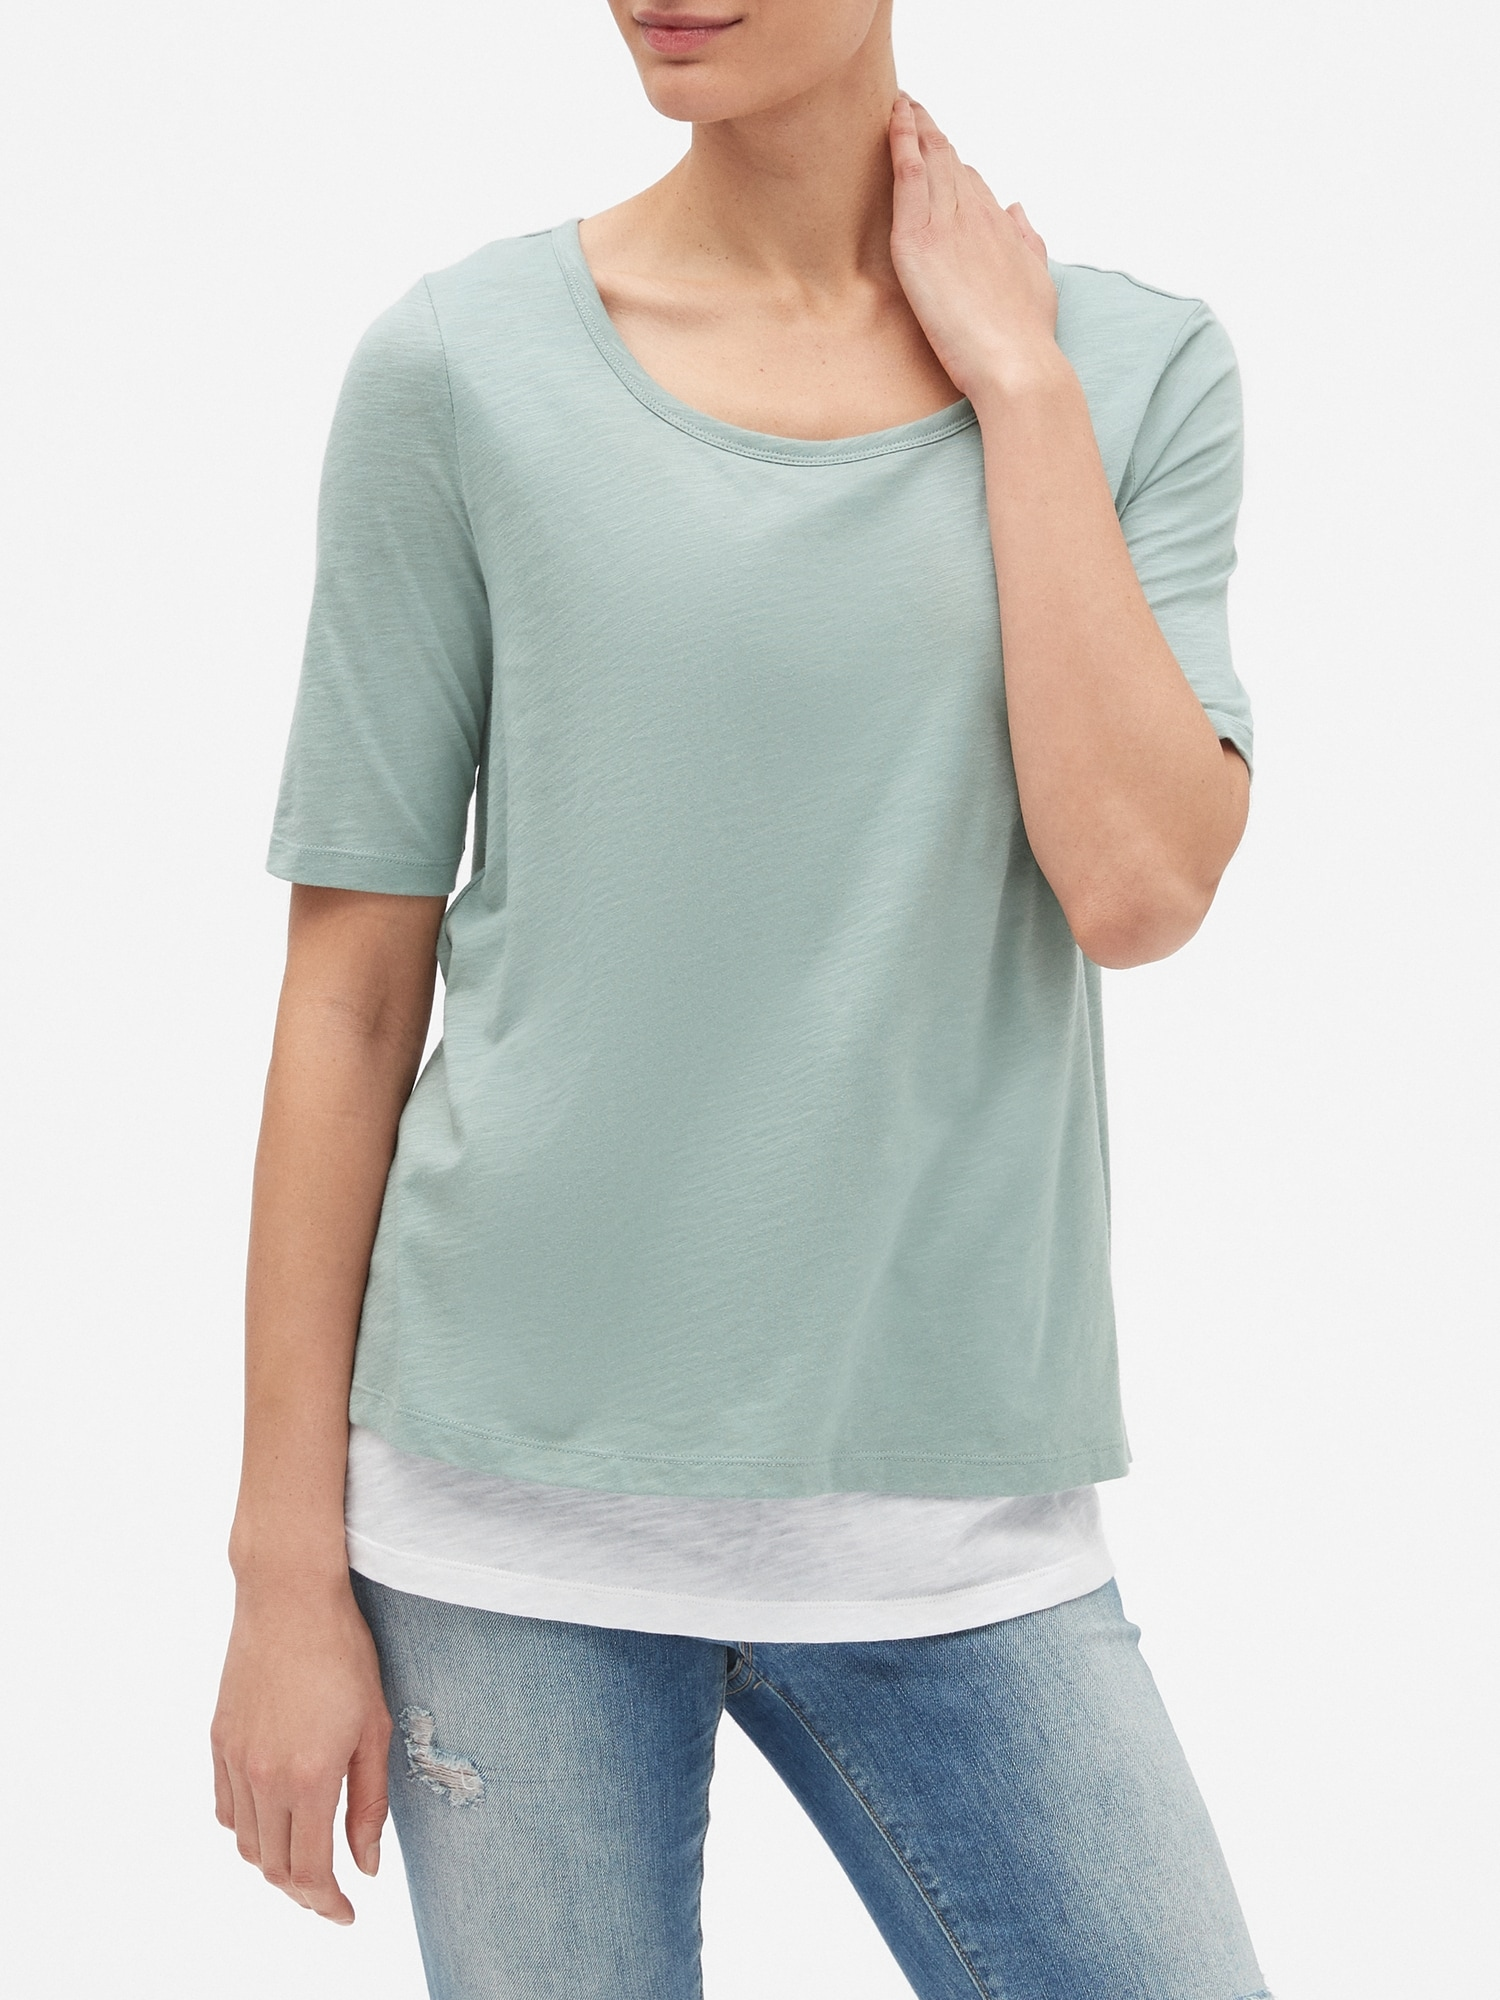 673b218e5e122c Maternity Double-Layer Nursing T-Shirt